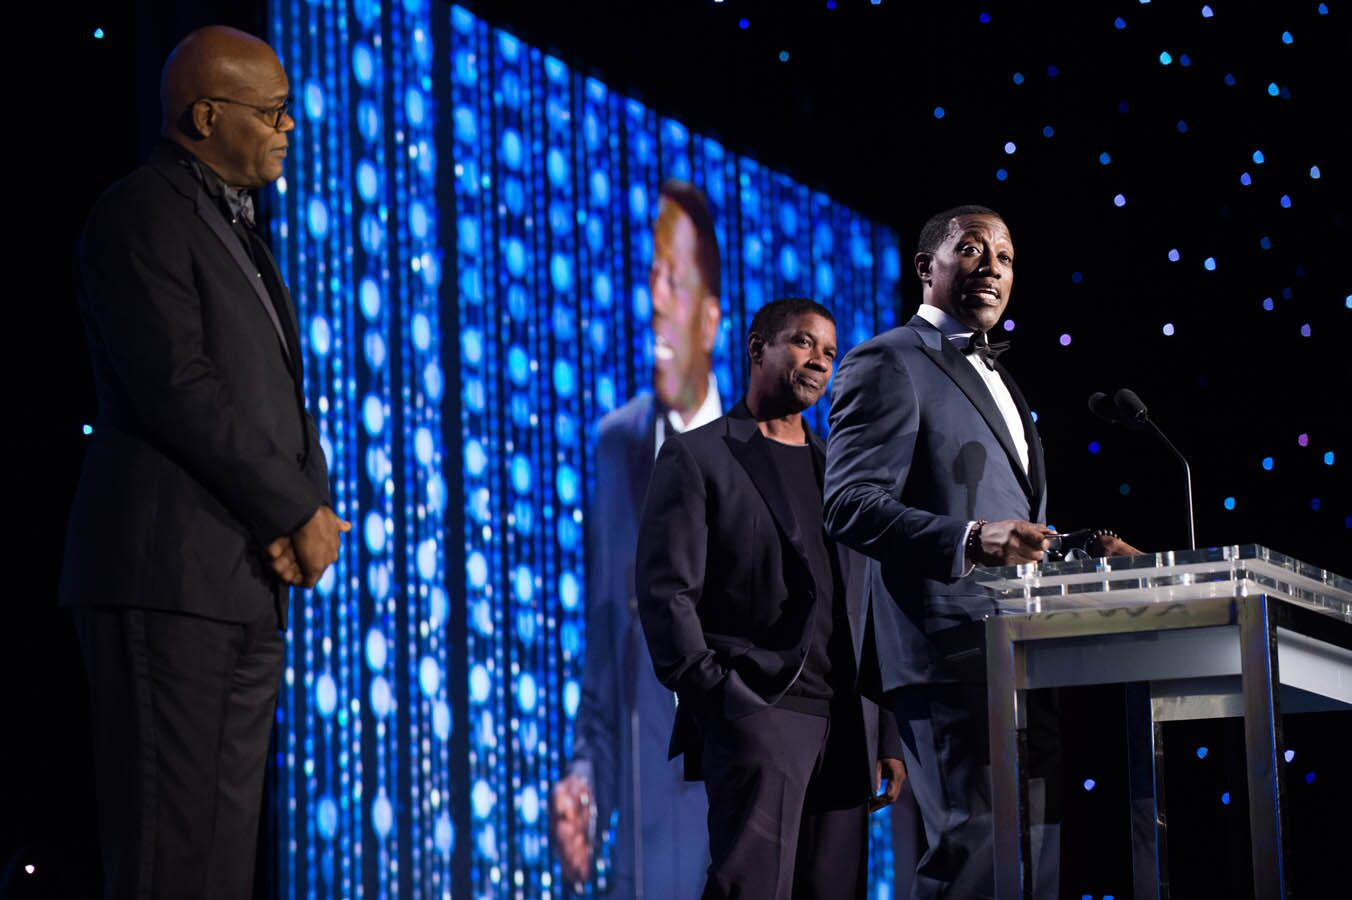 Oscar®-nominated actor Samuel Jackson (left), Oscar®-winning actor Denzel Washington (center) and Wesley Snipes speak as part of the award presentation to Honorary Award recipient Spike Lee at the 2015 Governors Awards